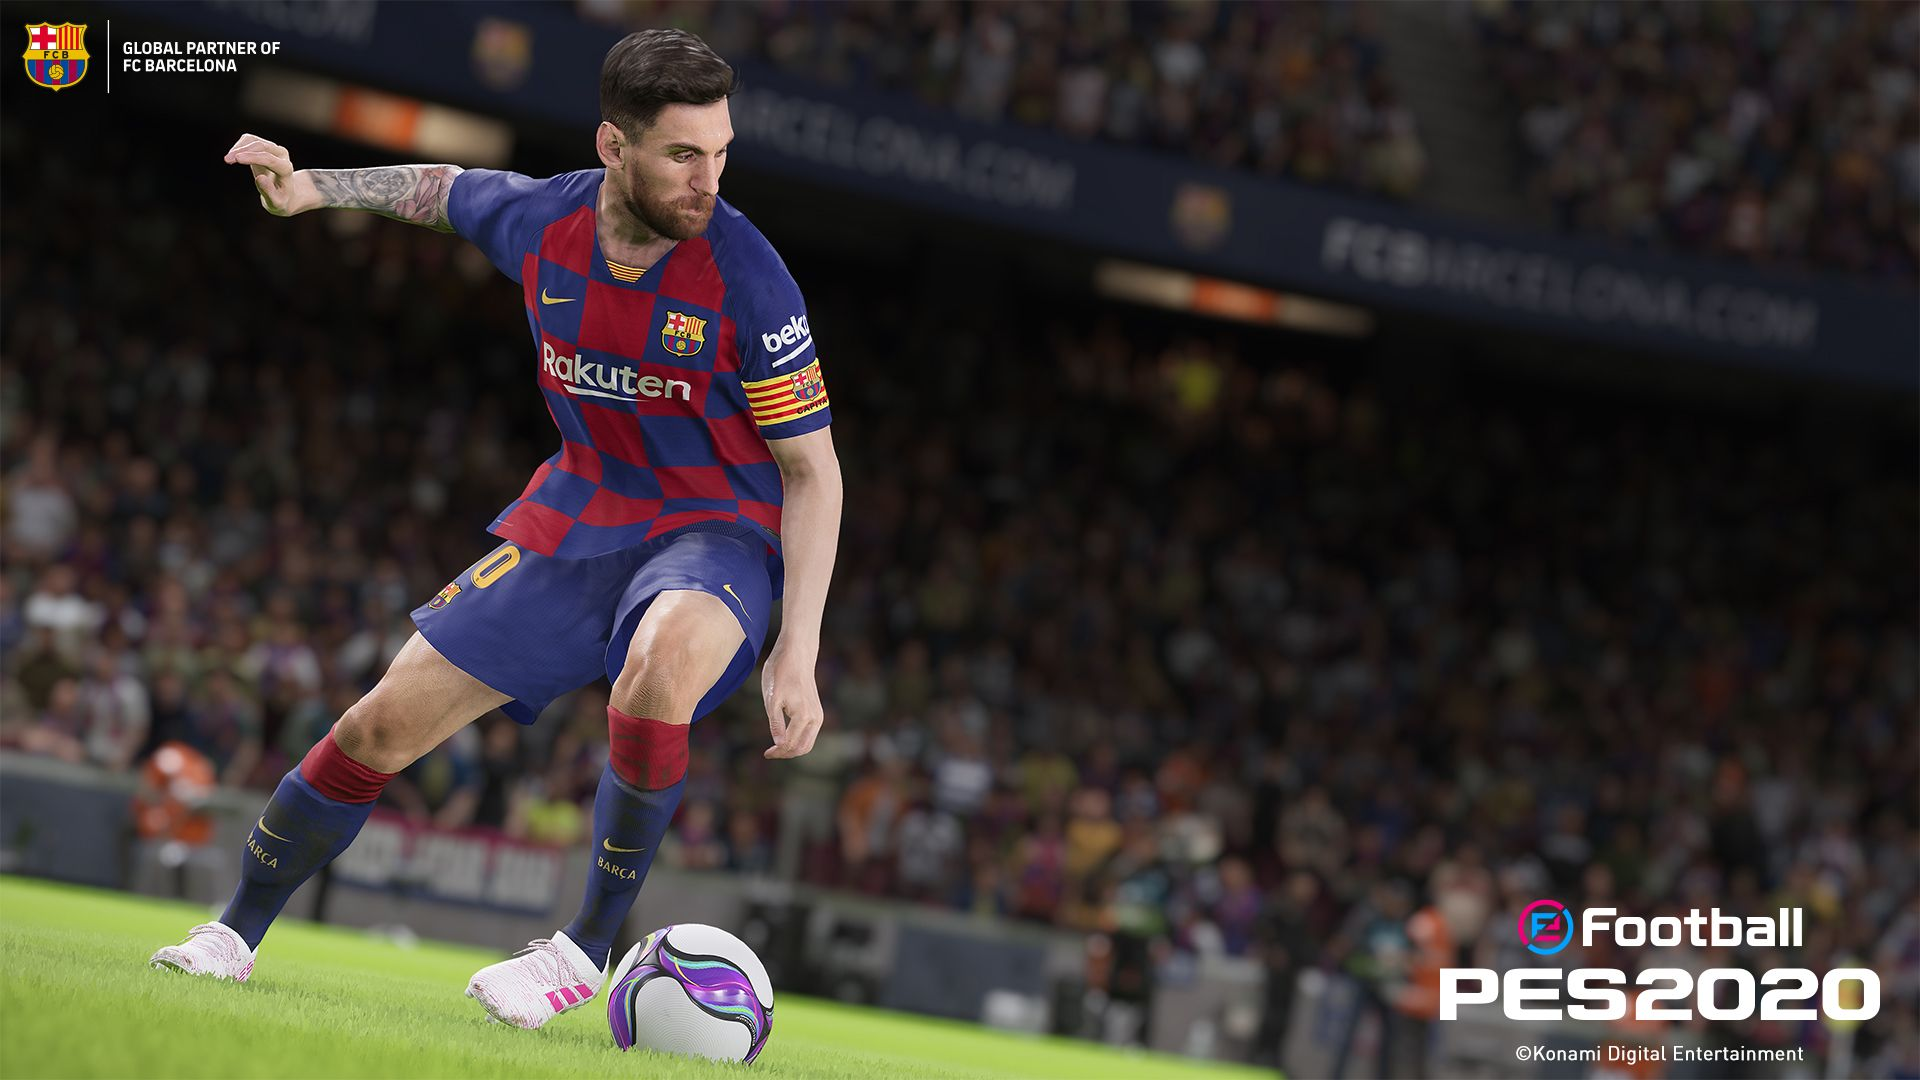 PES Reveals Details About PES 2020 Demo Release Date, Teams, And Game Modes